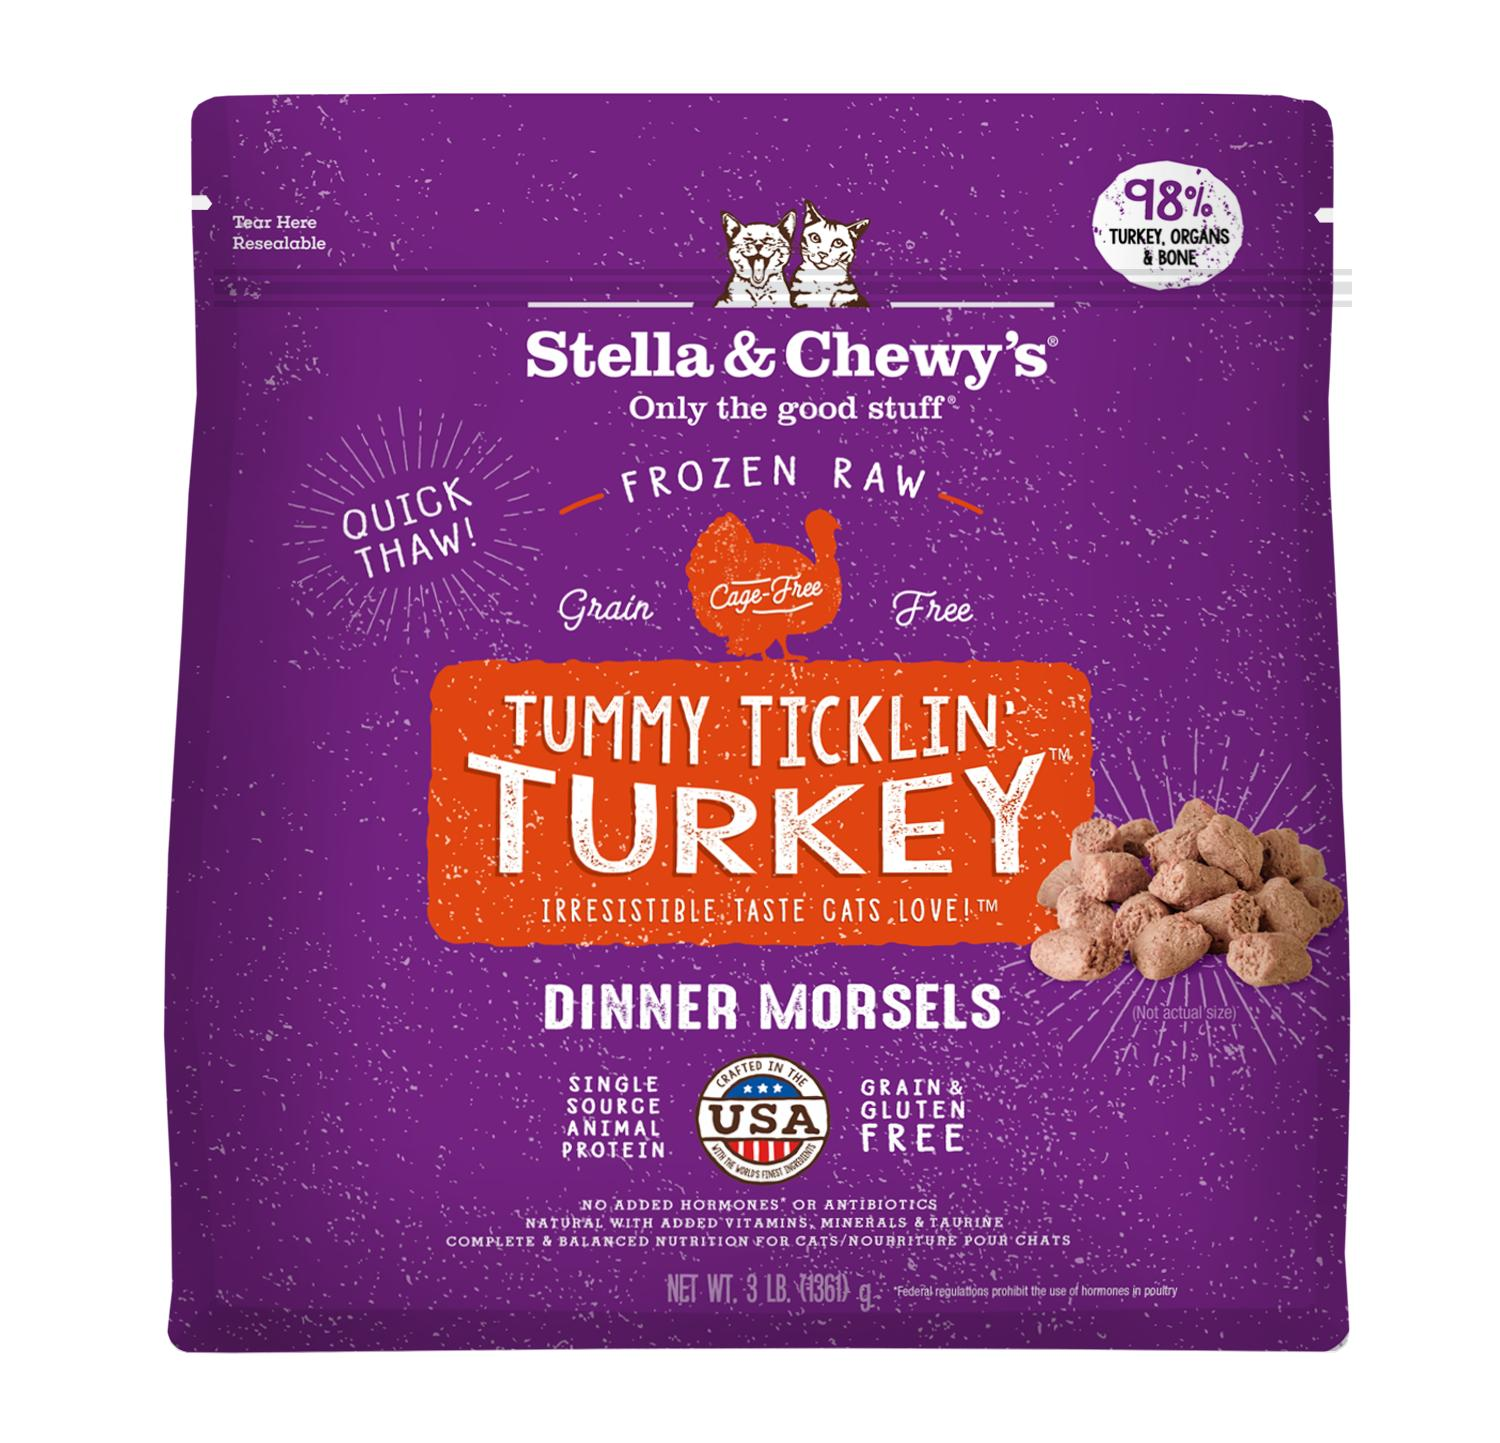 Stella & Chewy's Tummy Ticklin' Turkey Dinner Morsels Frozen Cat Food, 3-lb